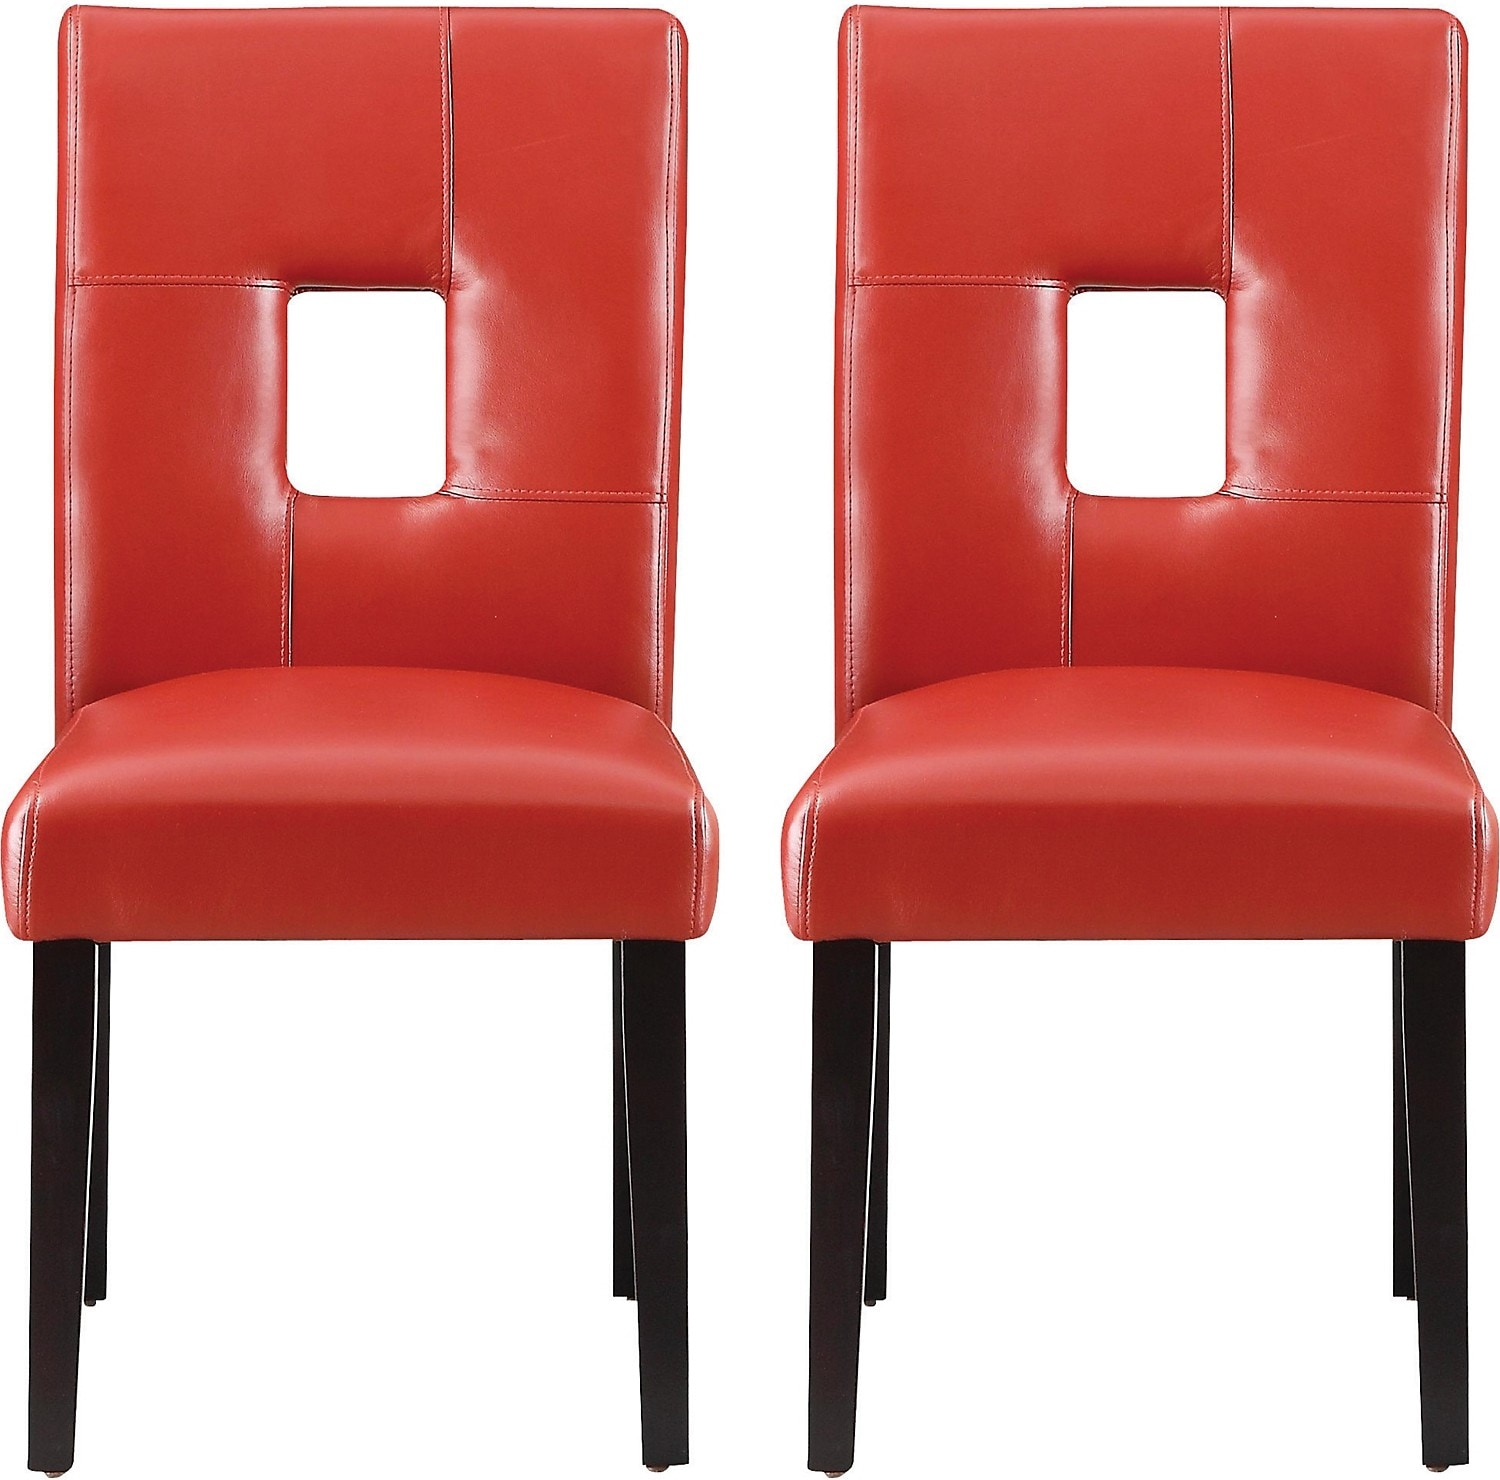 Dining Room Furniture - McKena Faux Leather Red Dining Chairs – Package of Two